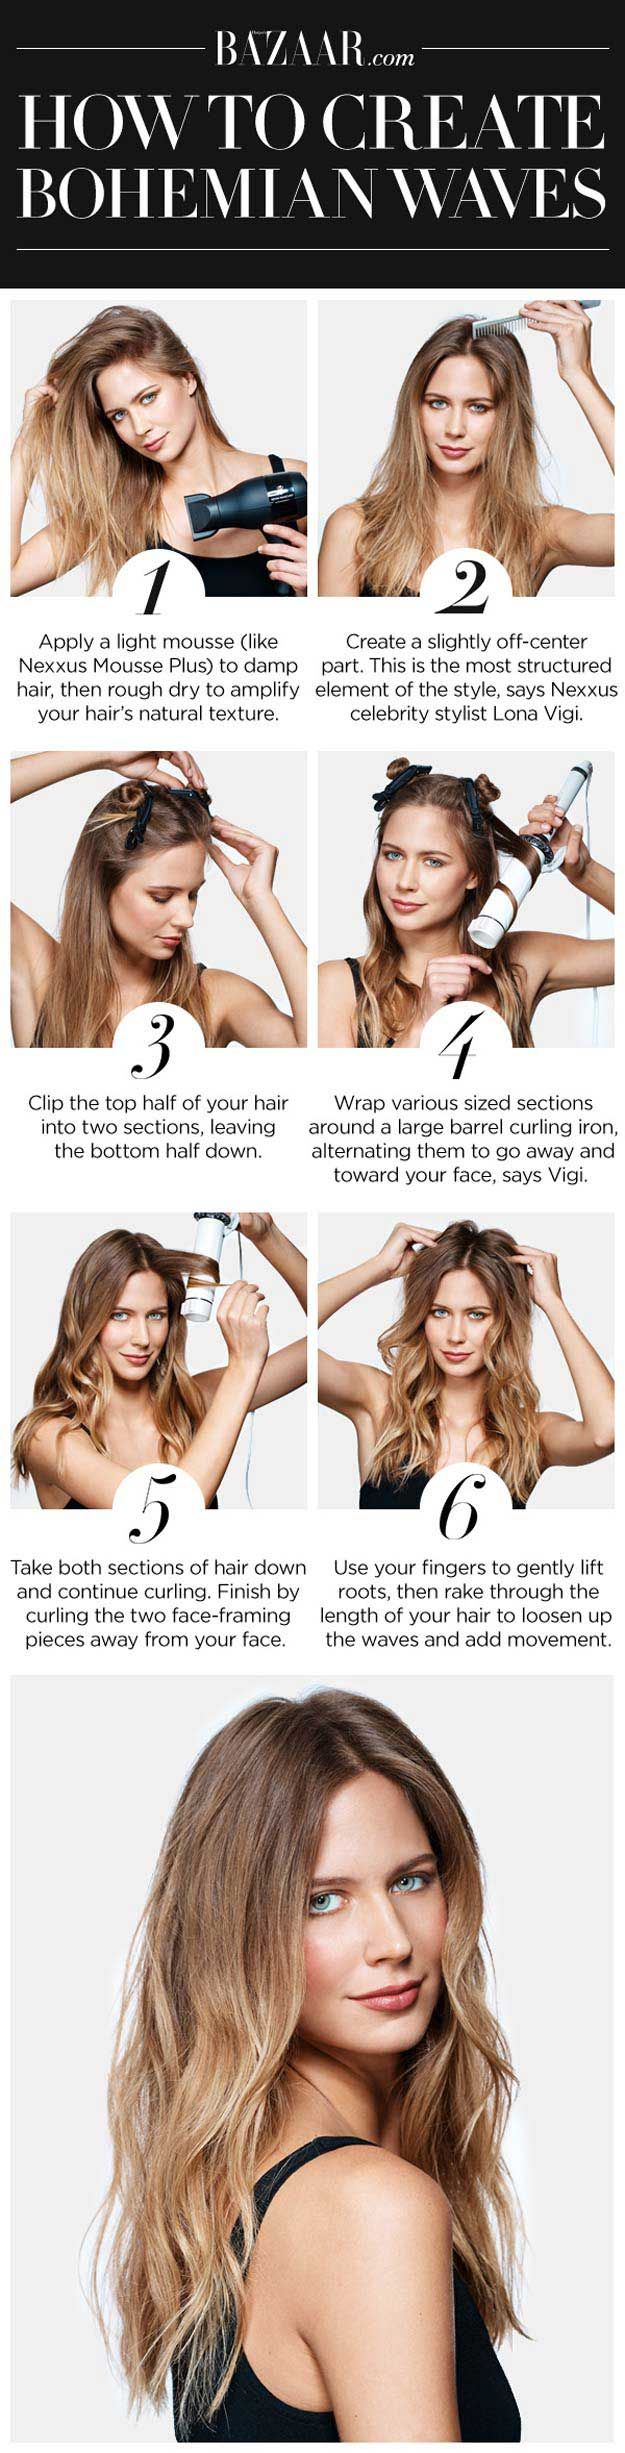 Best Hairstyles for Summer - How to Create Bohemian Waves - Easy and Cute Hair S...